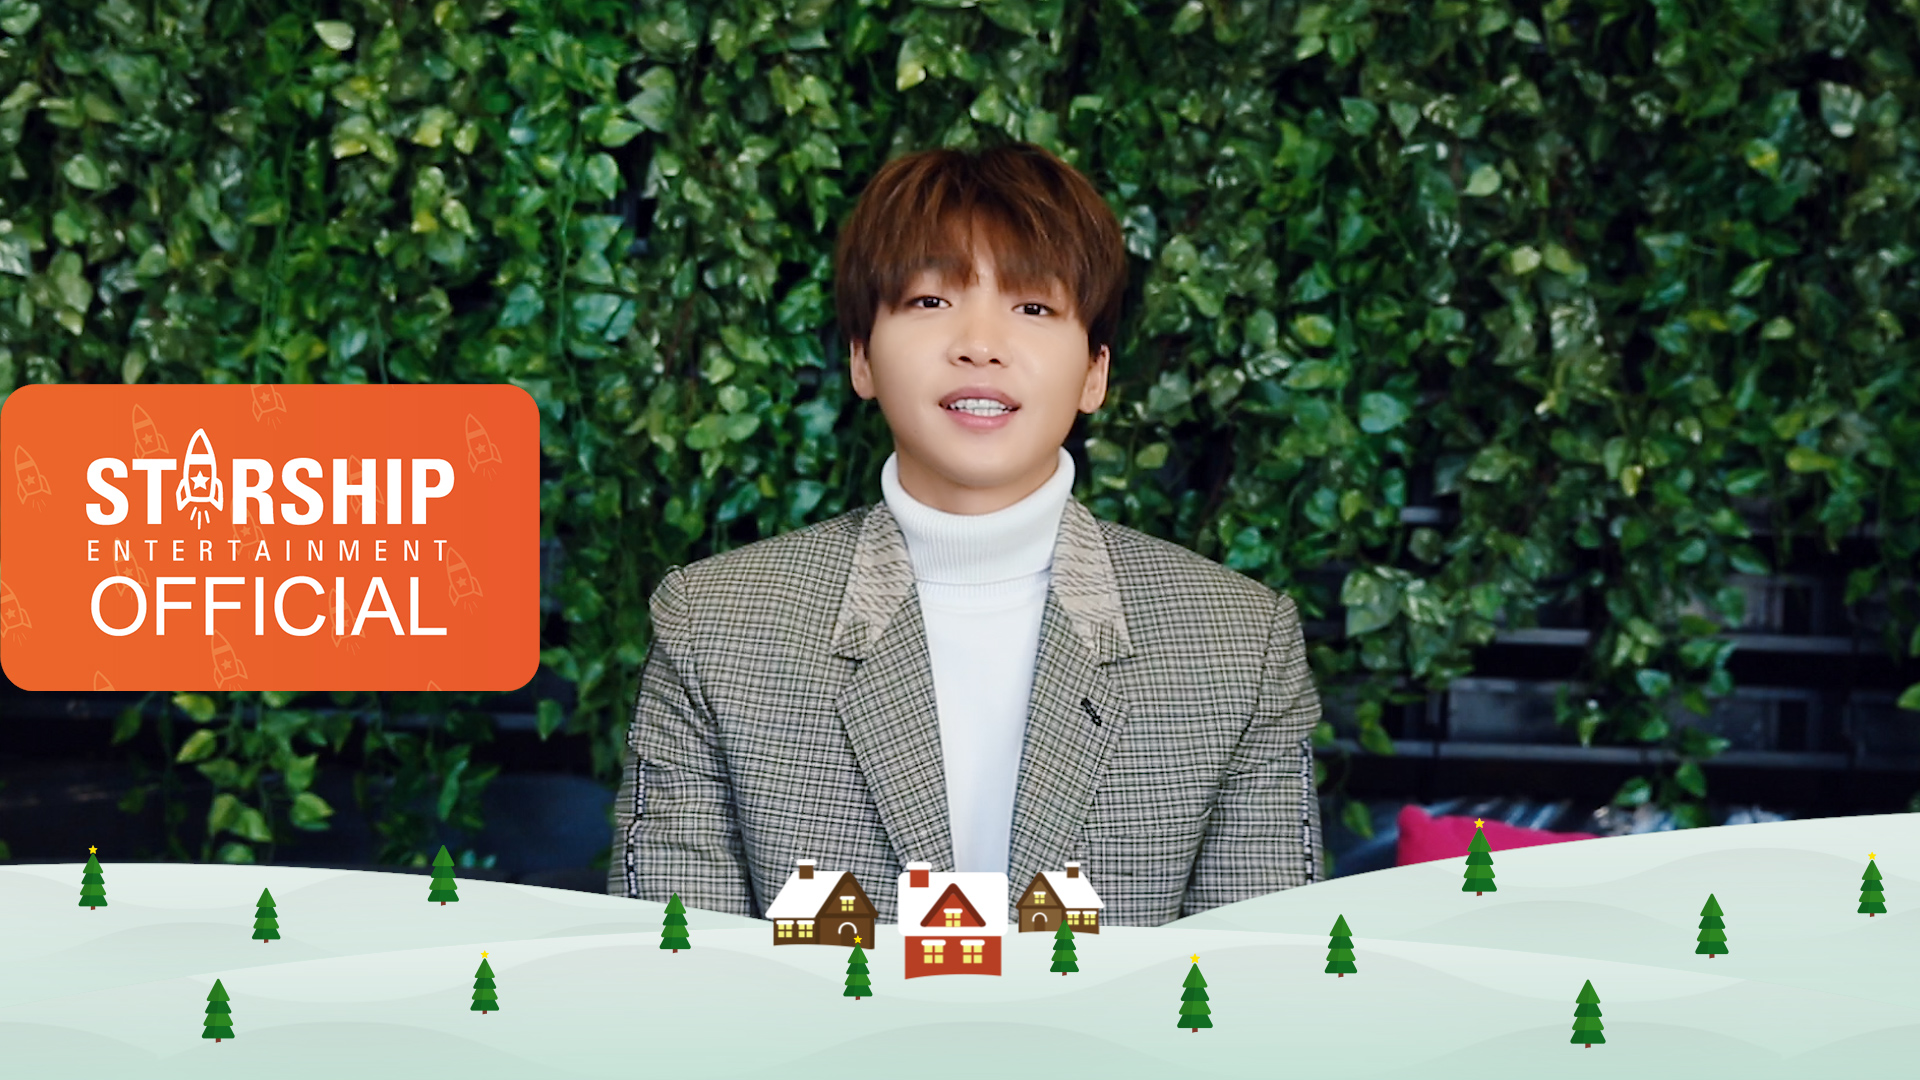 [Special Clip] 정세운(JEONG SEWOON) - 2018 Christmas Message